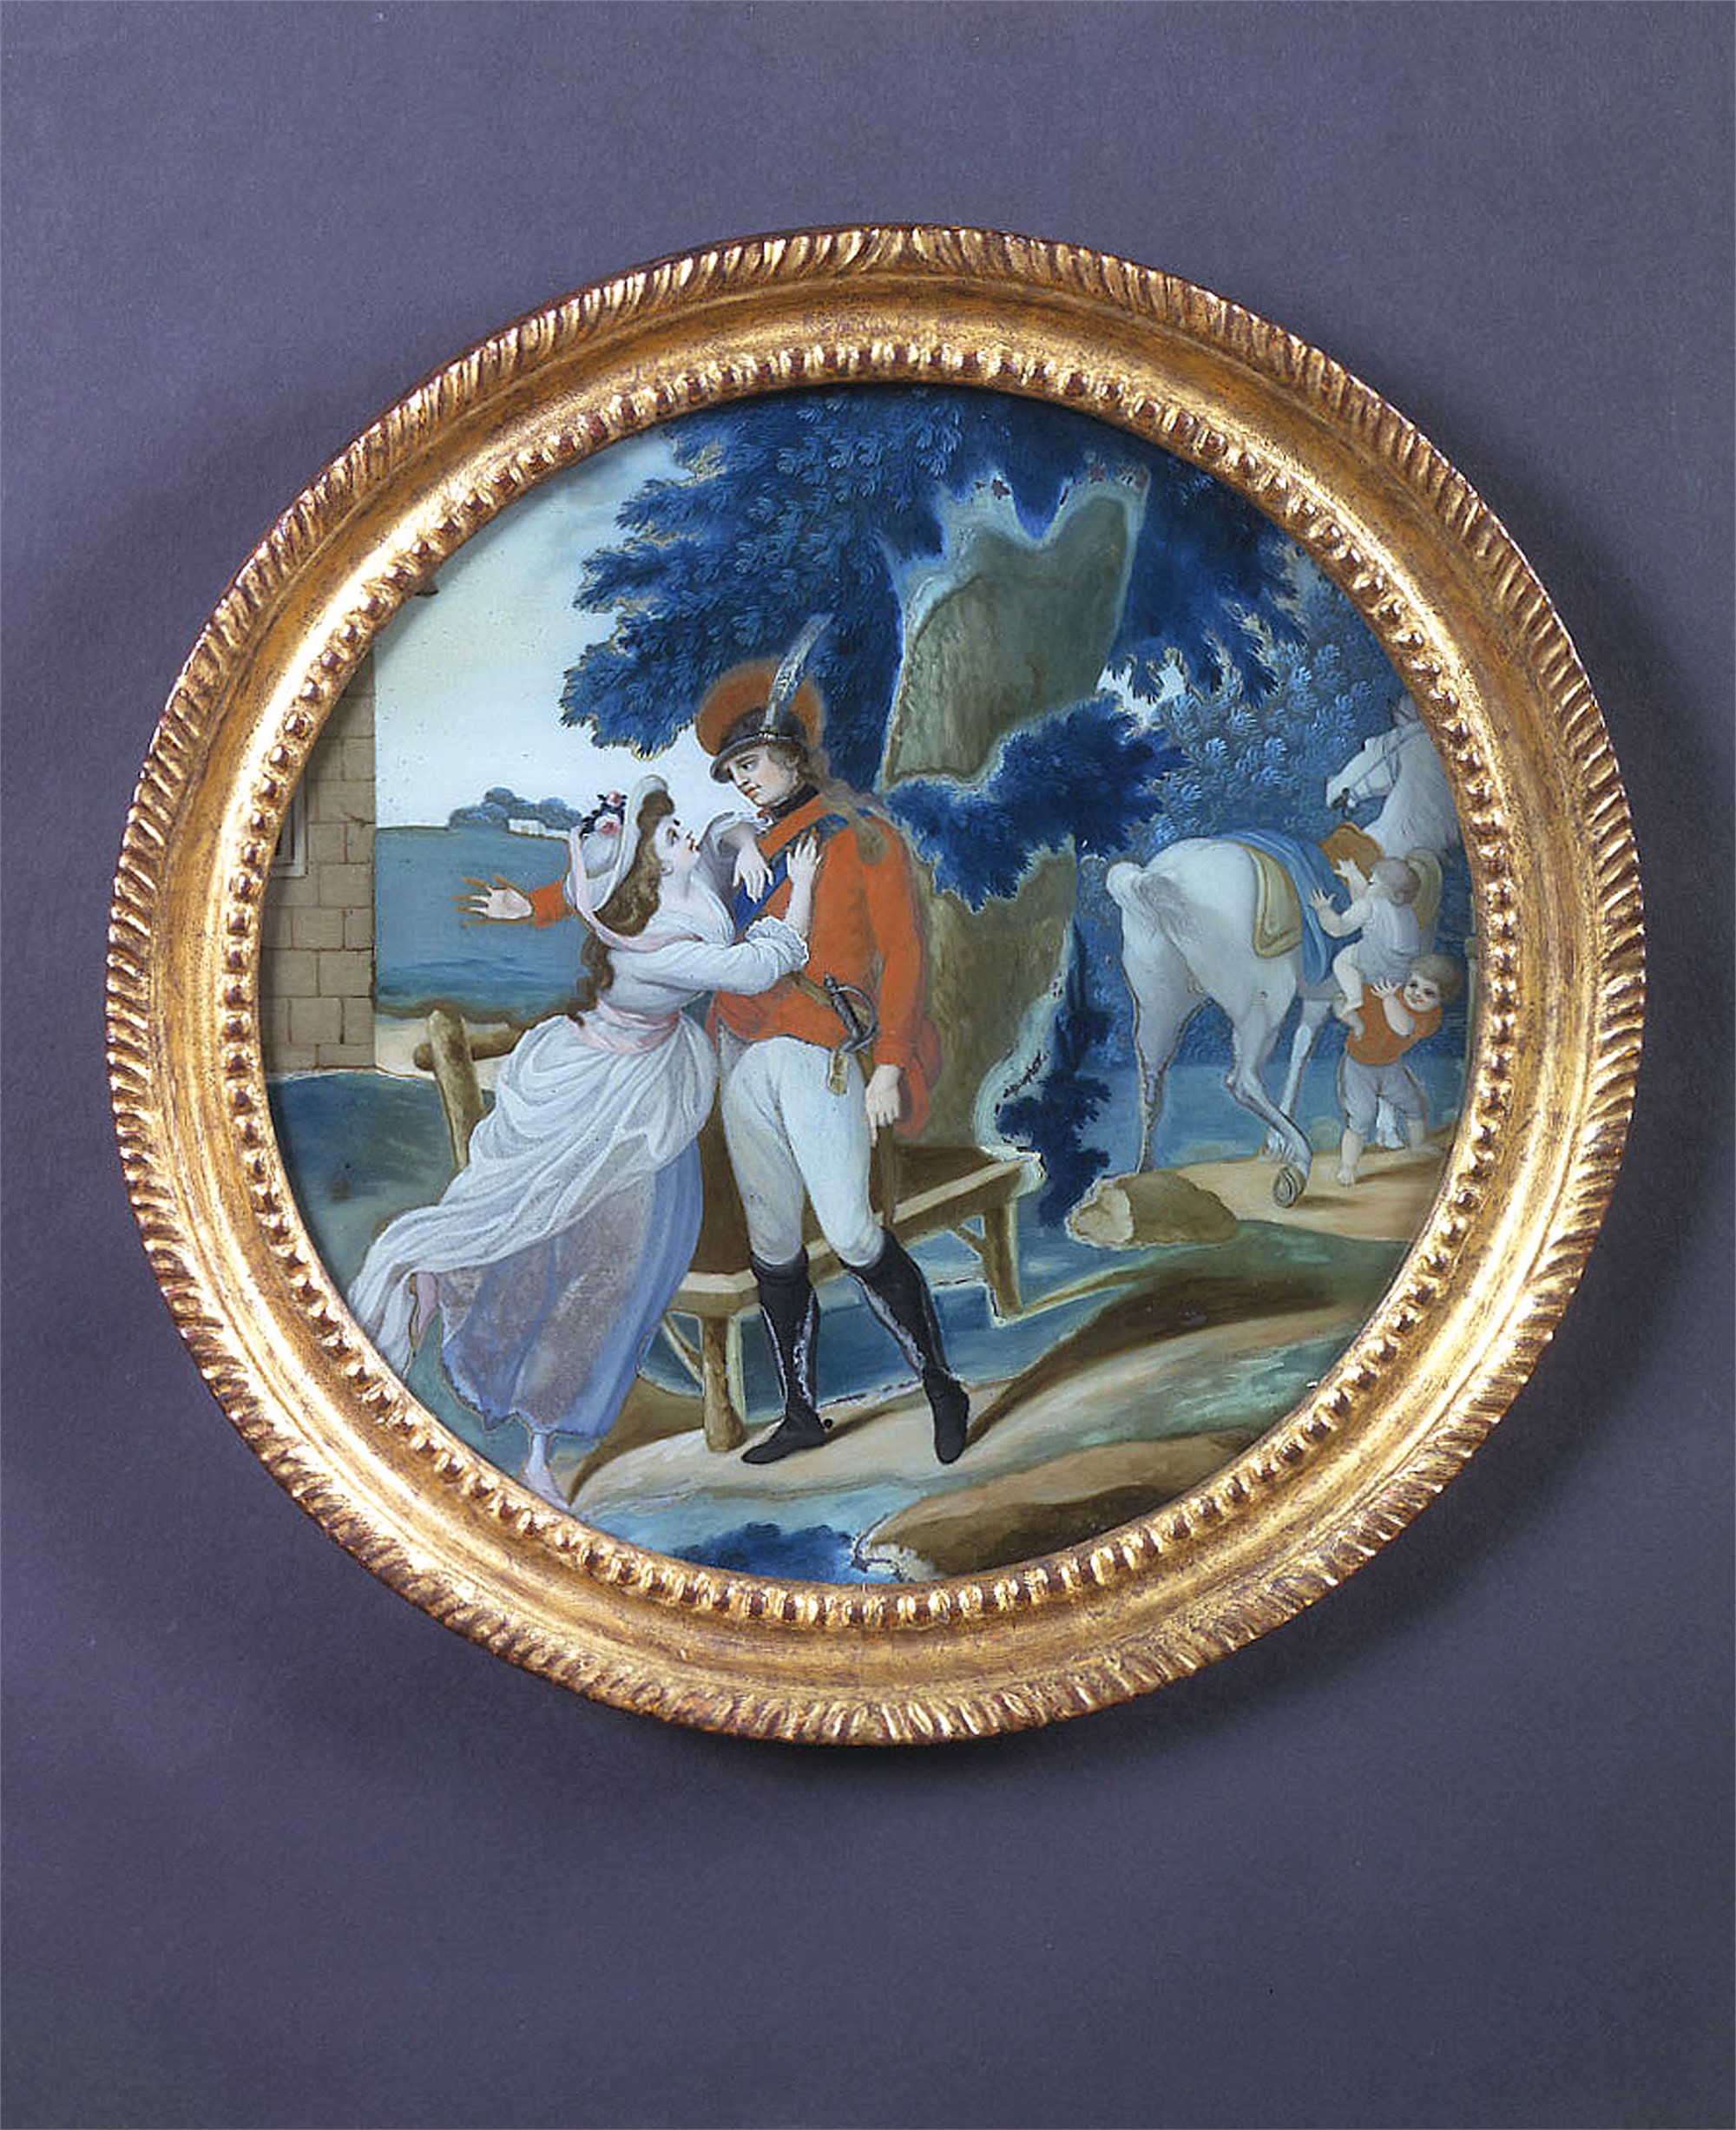 ROUND REVERSE PAINTING ON GLASS WITH LADY EMBRACING OFFICER